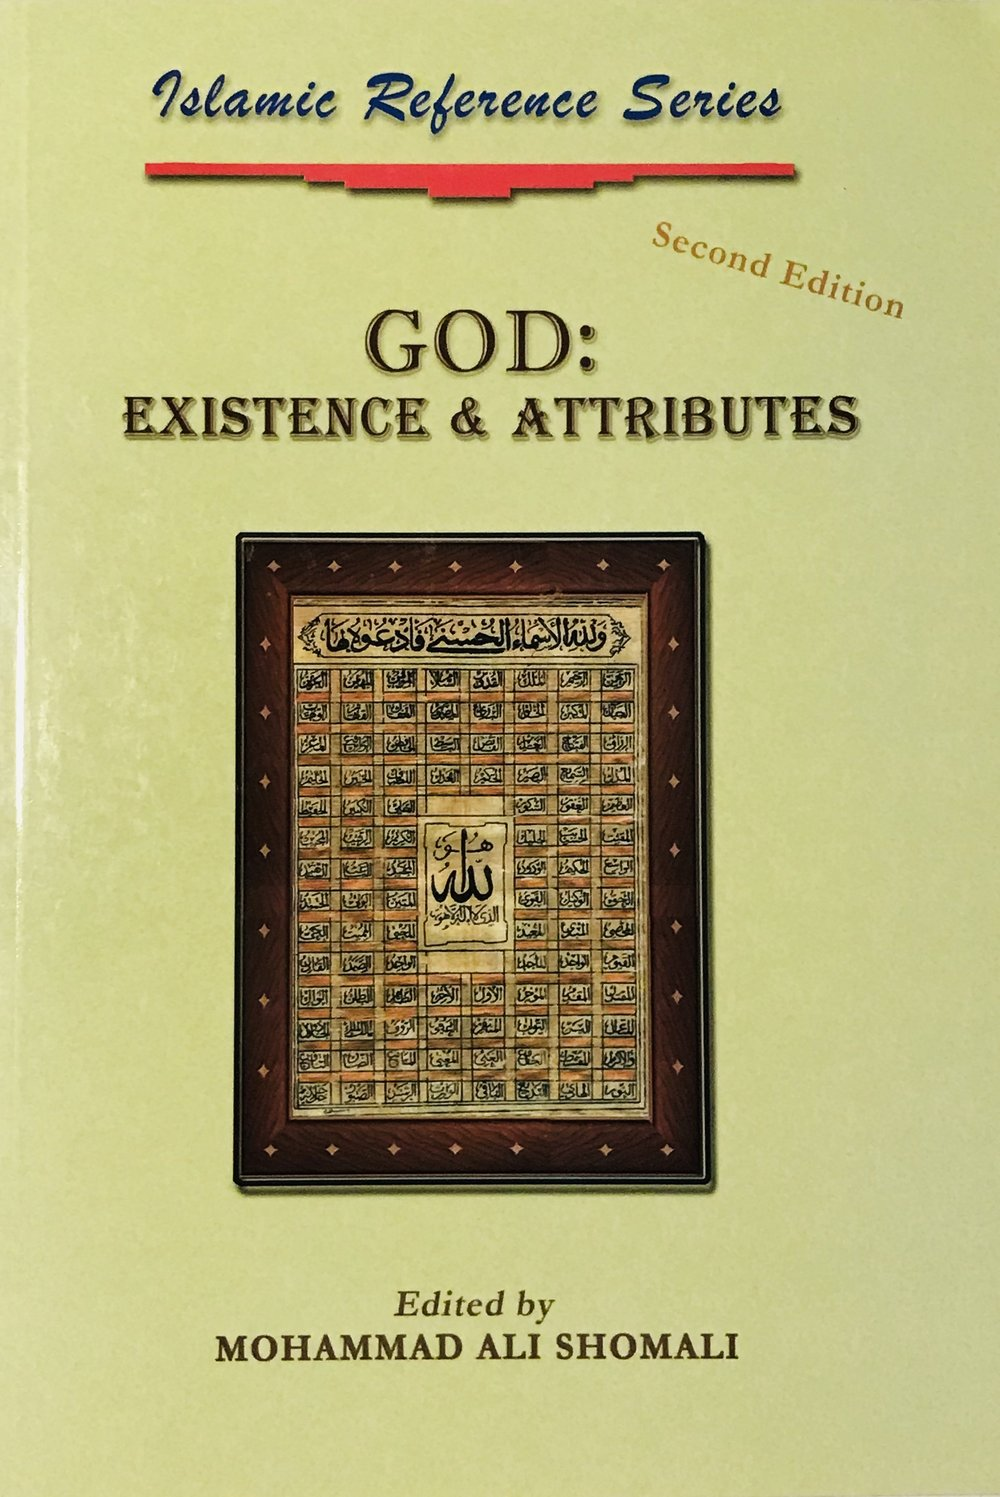 Islamic Reference Series: God - Existence and Attributes